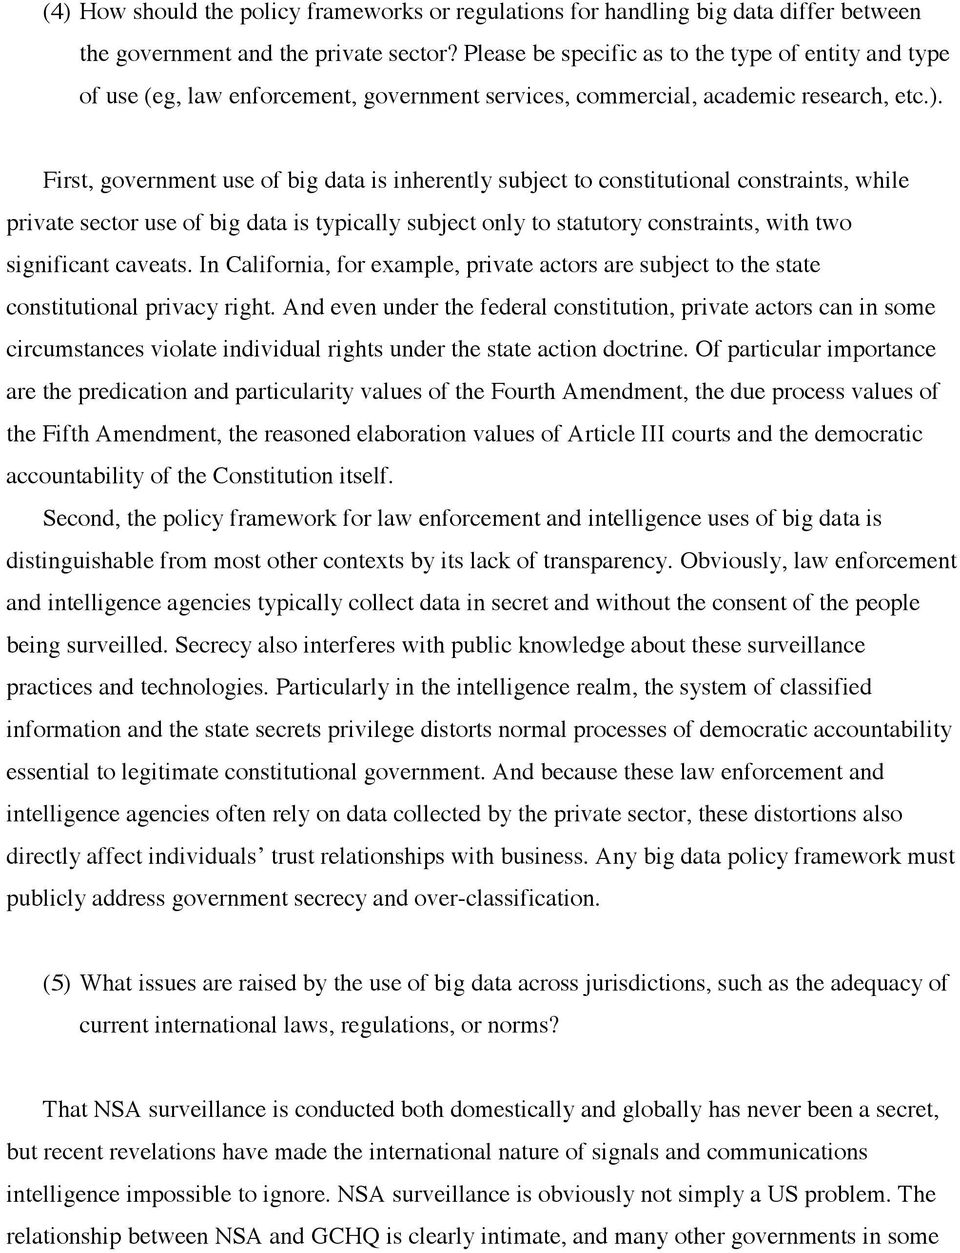 First, government use of big data is inherently subject to constitutional constraints, while private sector use of big data is typically subject only to statutory constraints, with two significant